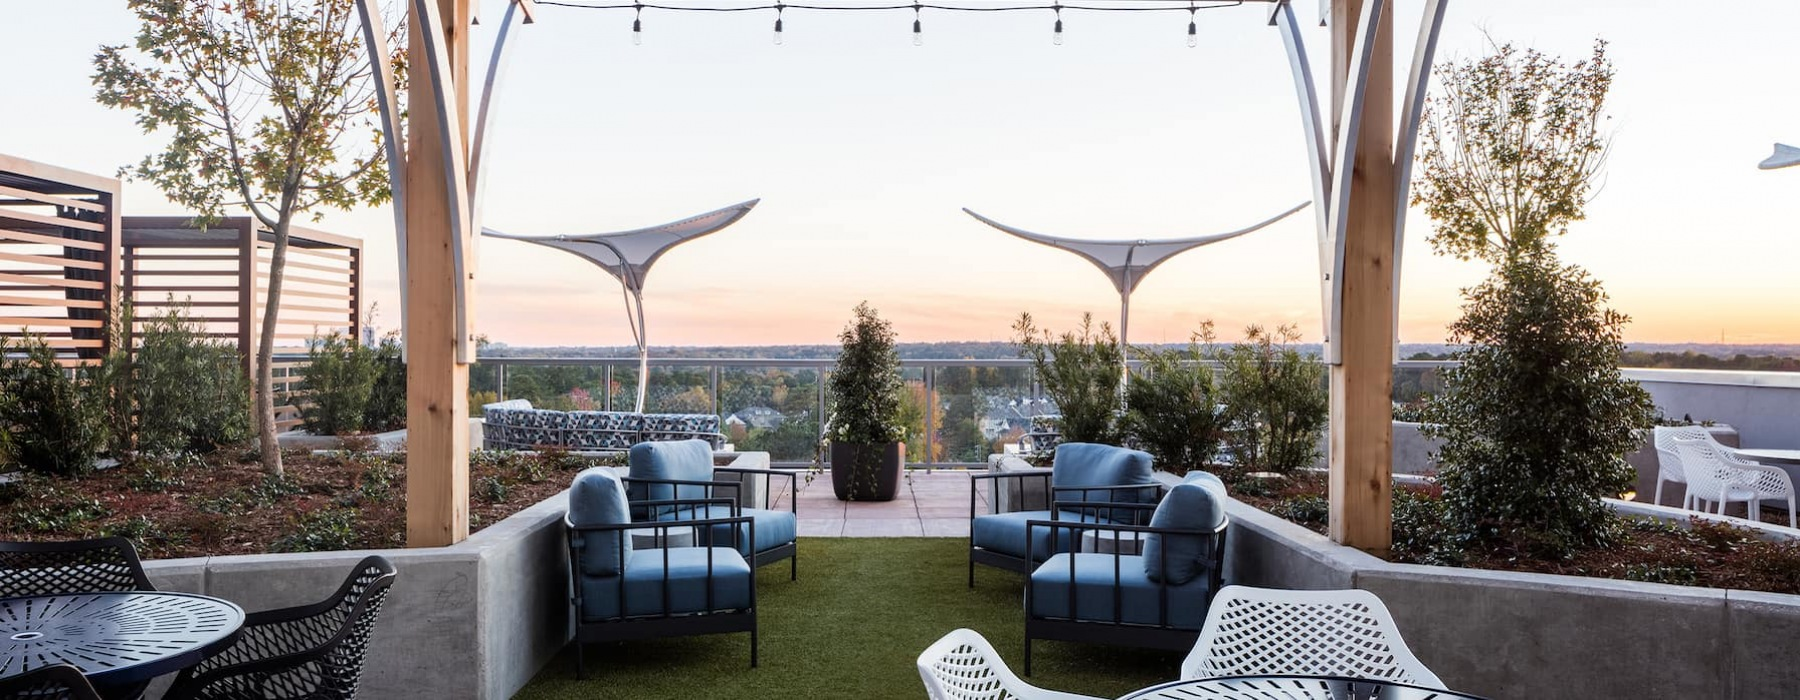 rooftop outdoor lounge area with great views and spacious seating